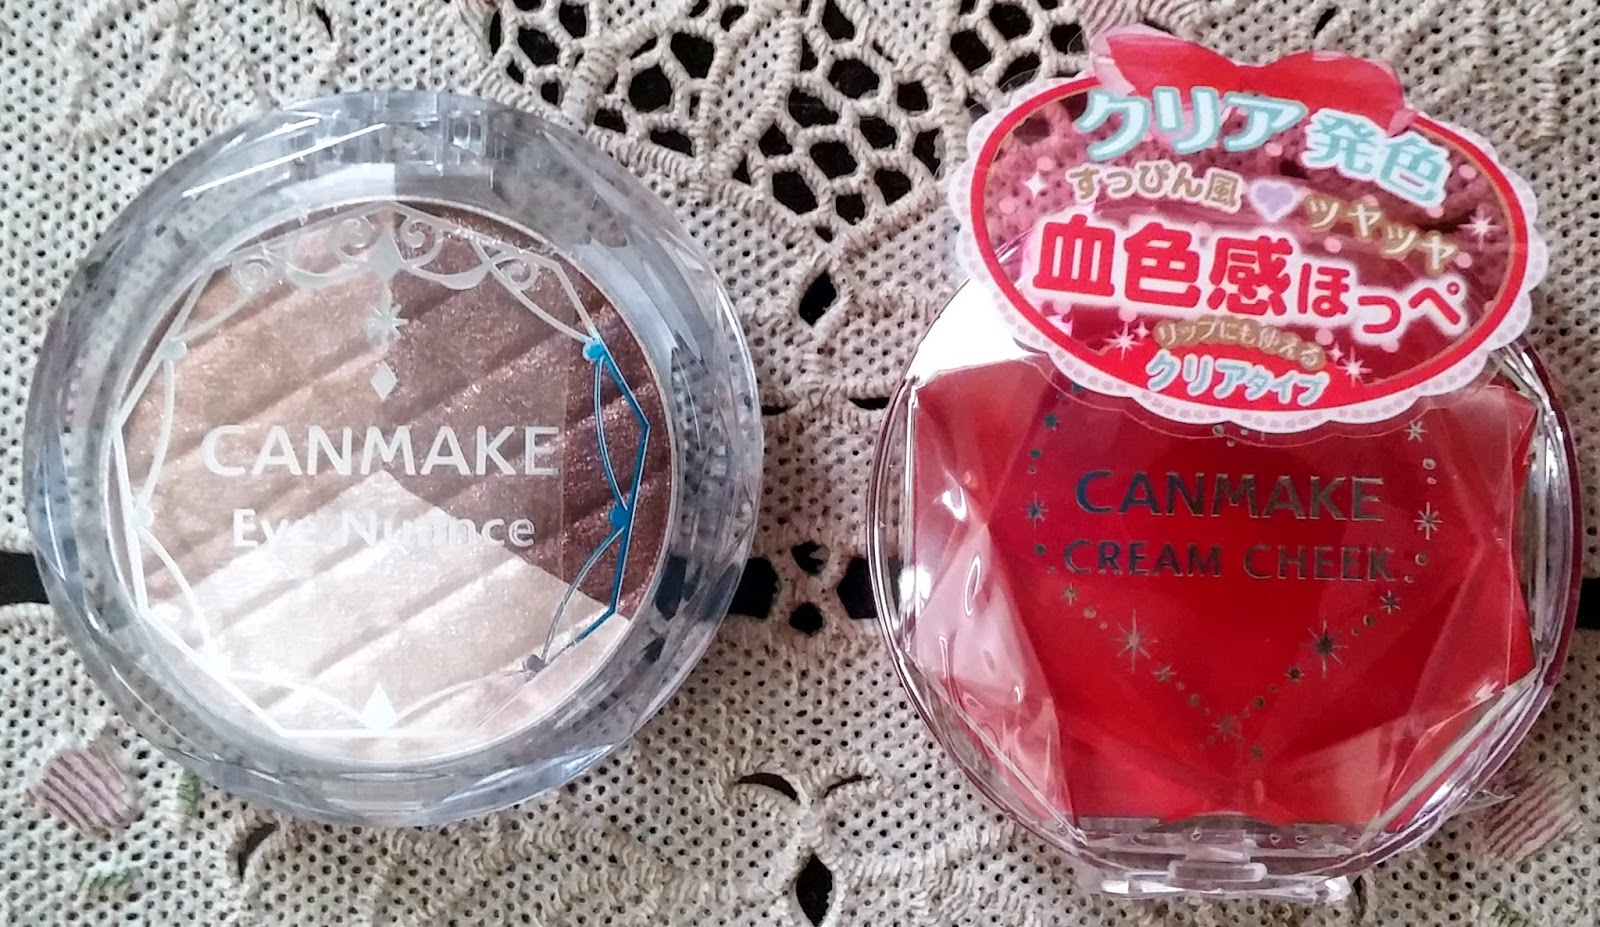 Wateryscenery Canmake Cream Cheek Cl01 Clear Red Heart Eye Nuance Jill Beauty Lip Matte 01 Cherry Hear Did You See The This One Have Bloody Color But On Brighter Shade